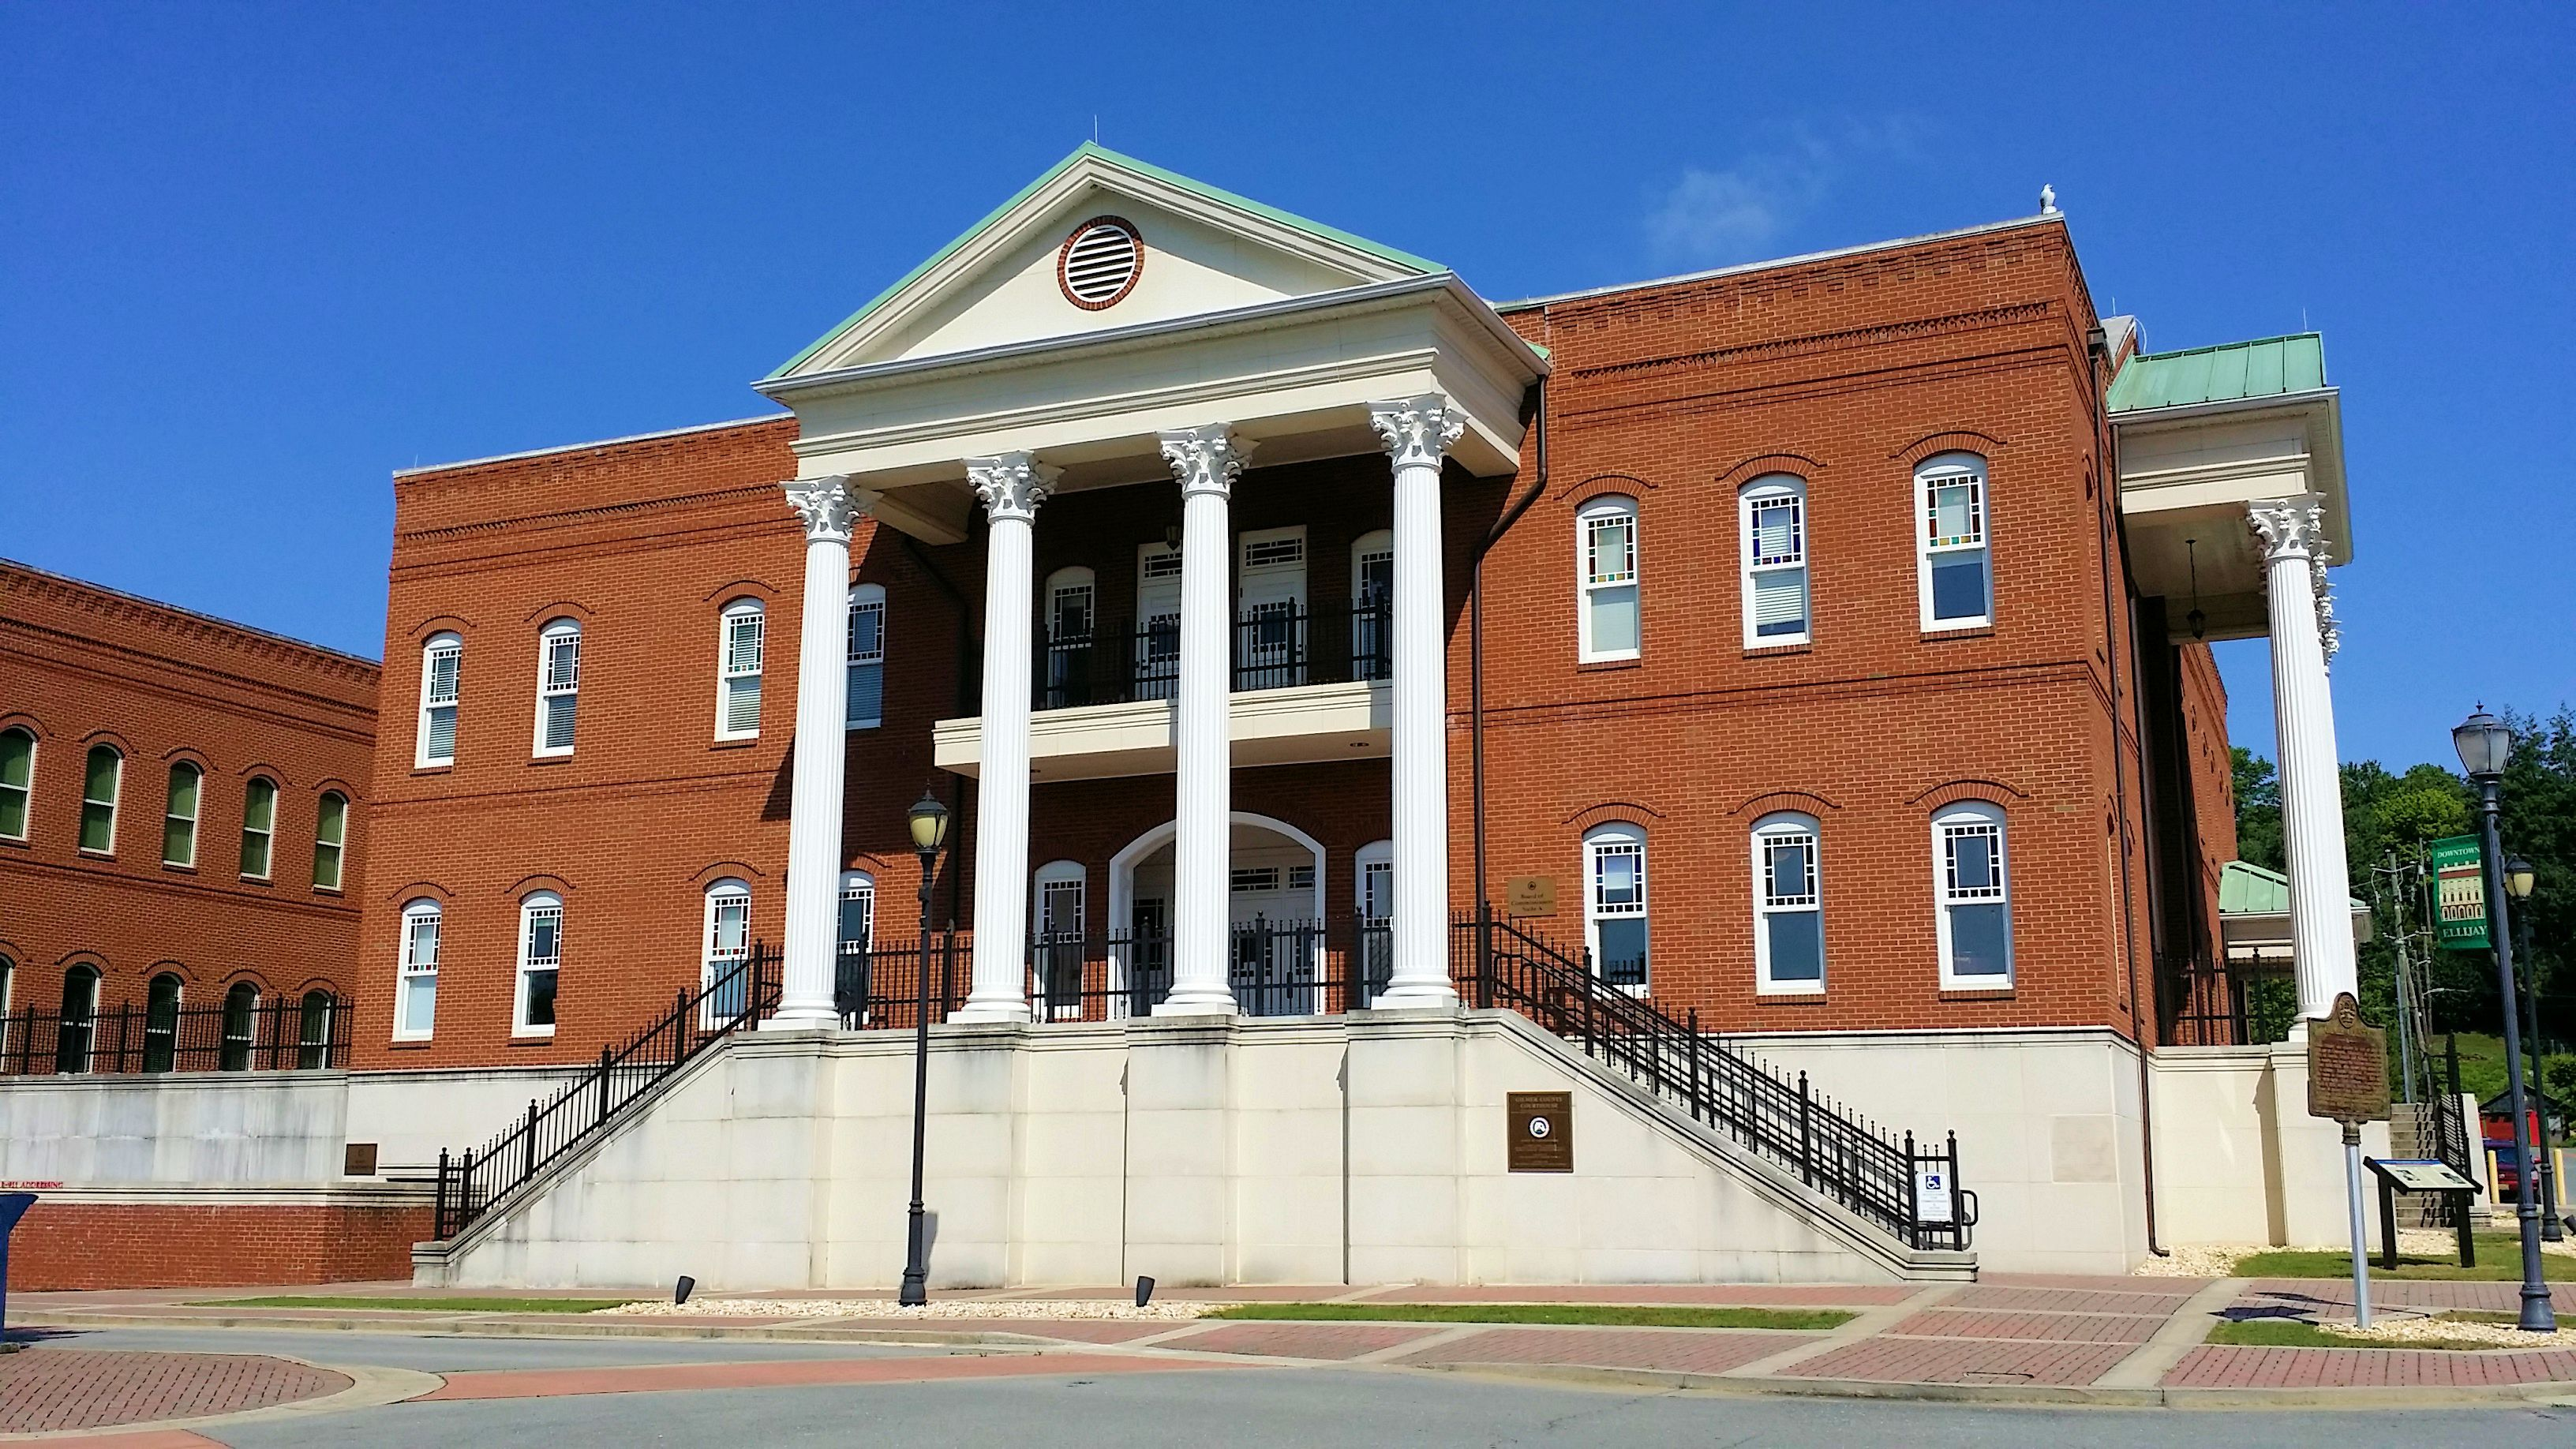 Gilmer county courthouse located at the square in downtown